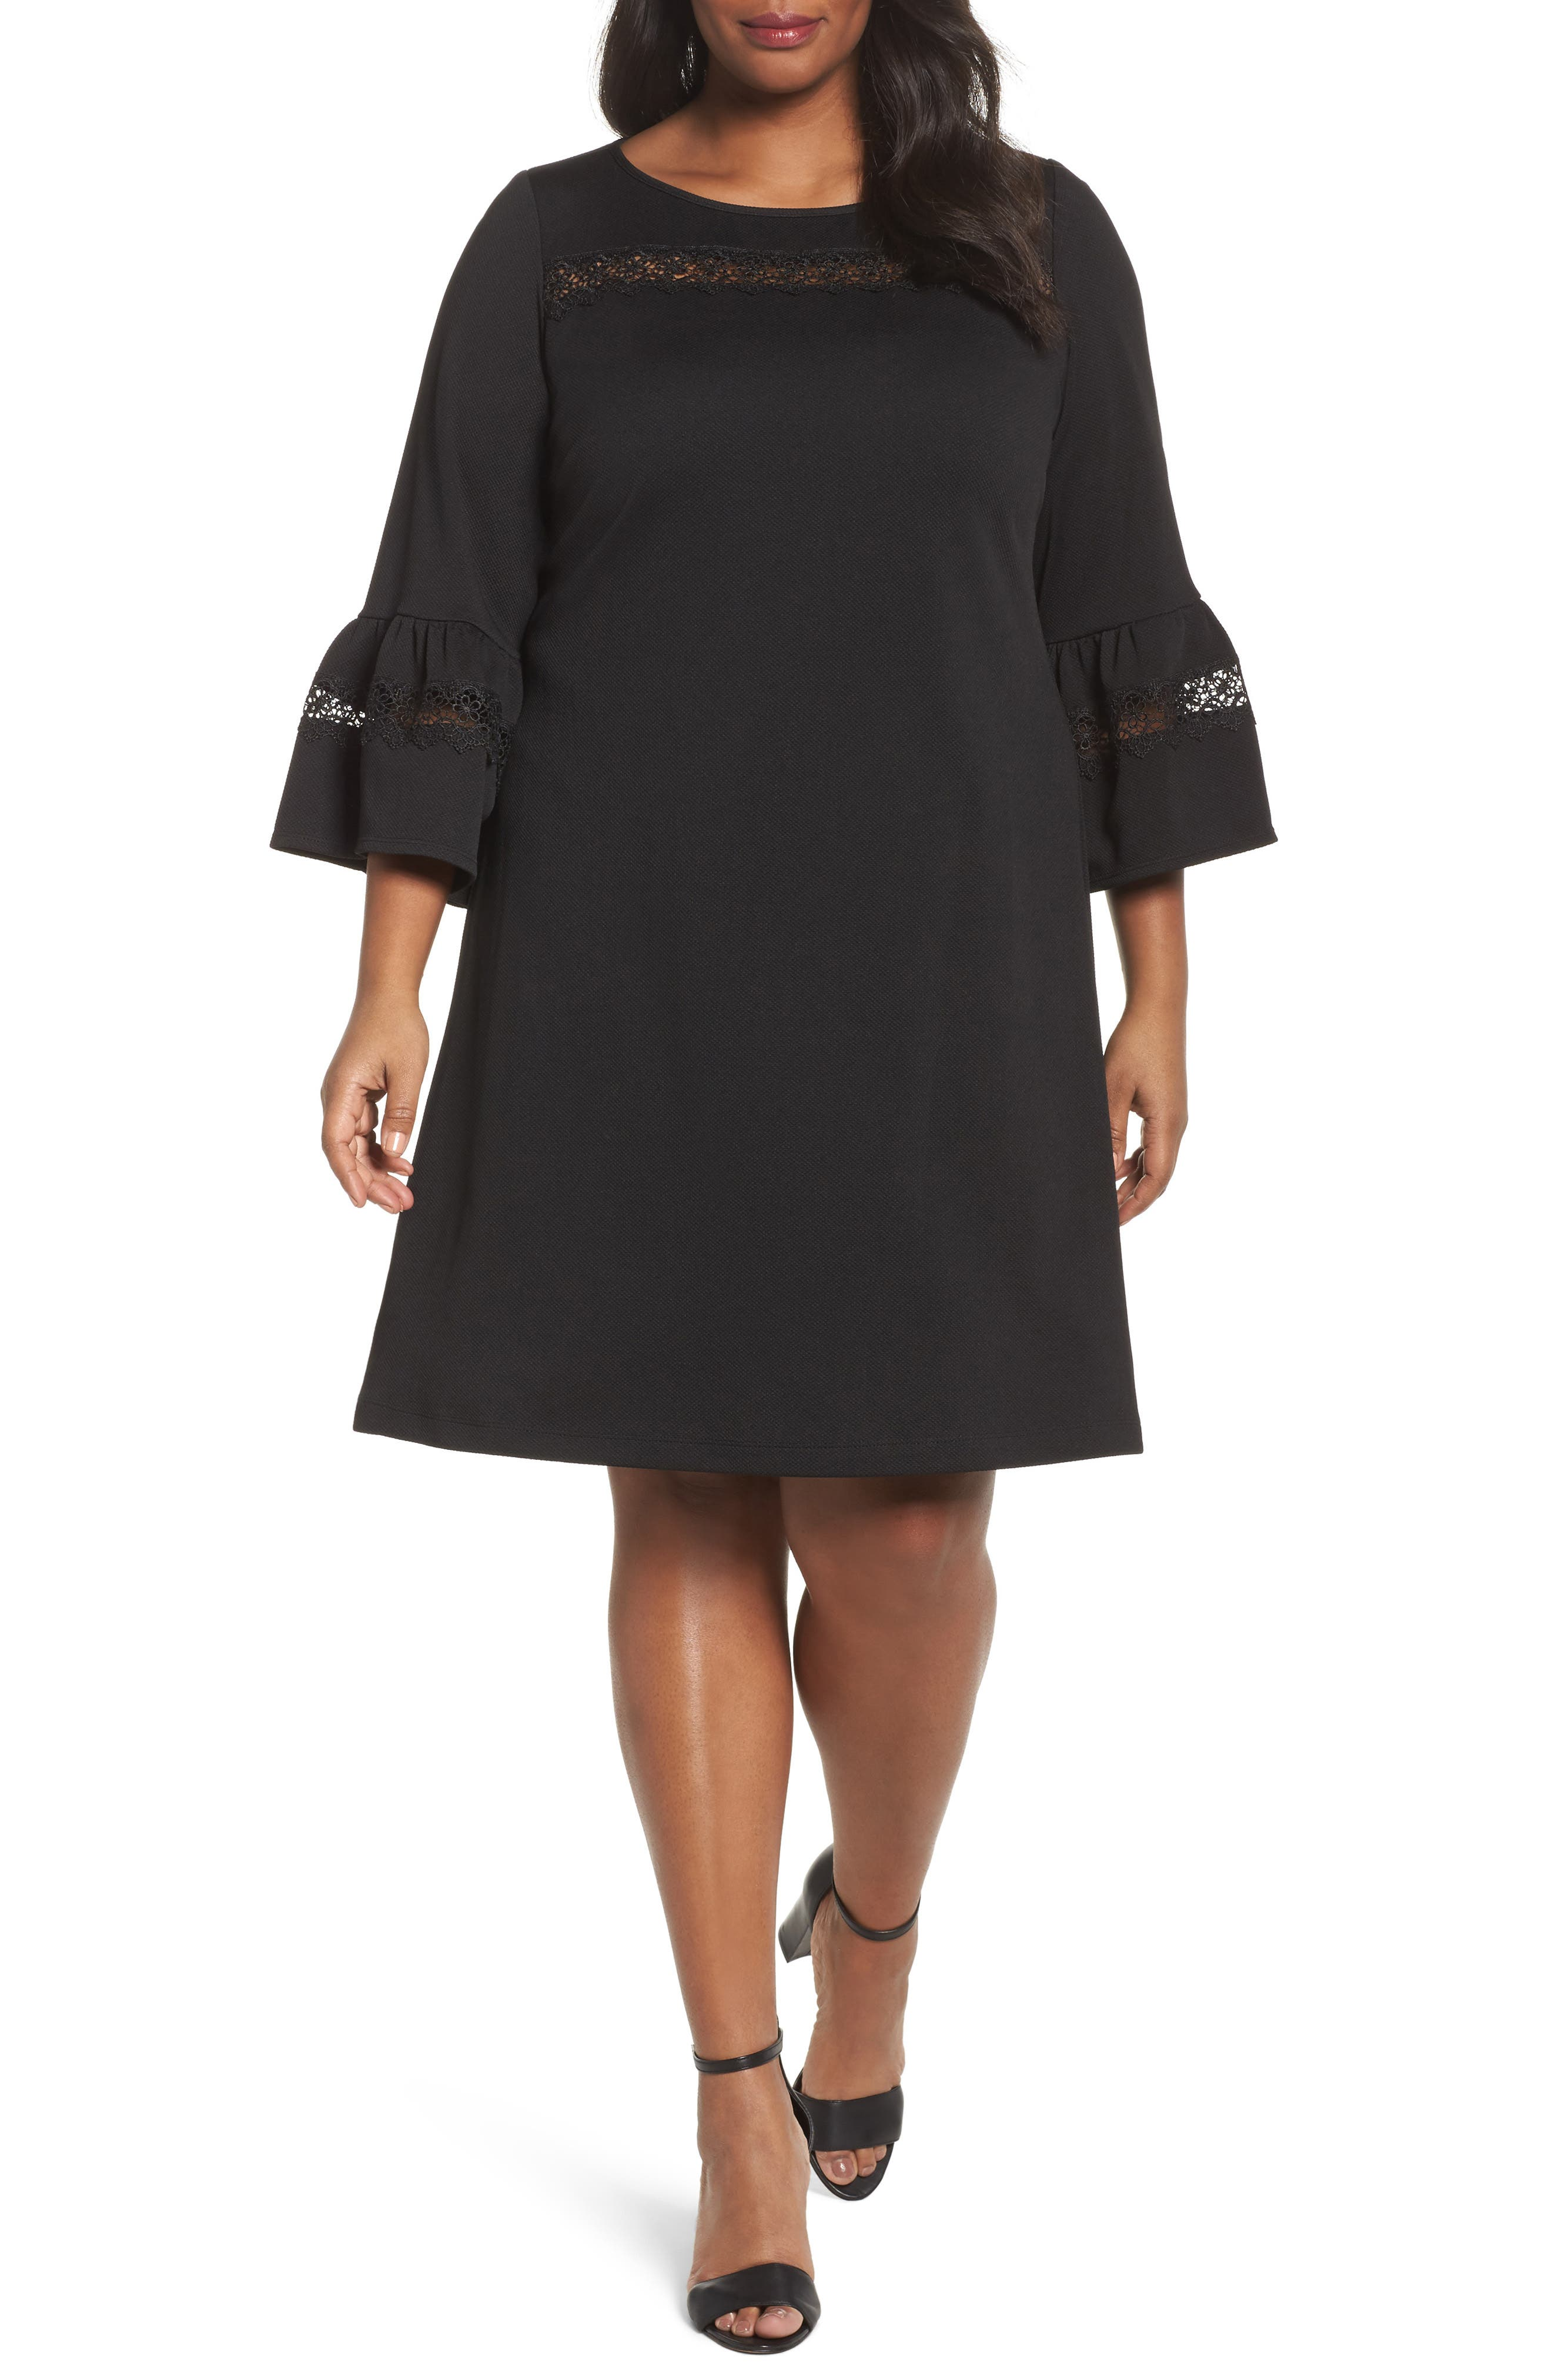 Main Image - Gabby Skye Bell Sleeve Dress (Plus Size)